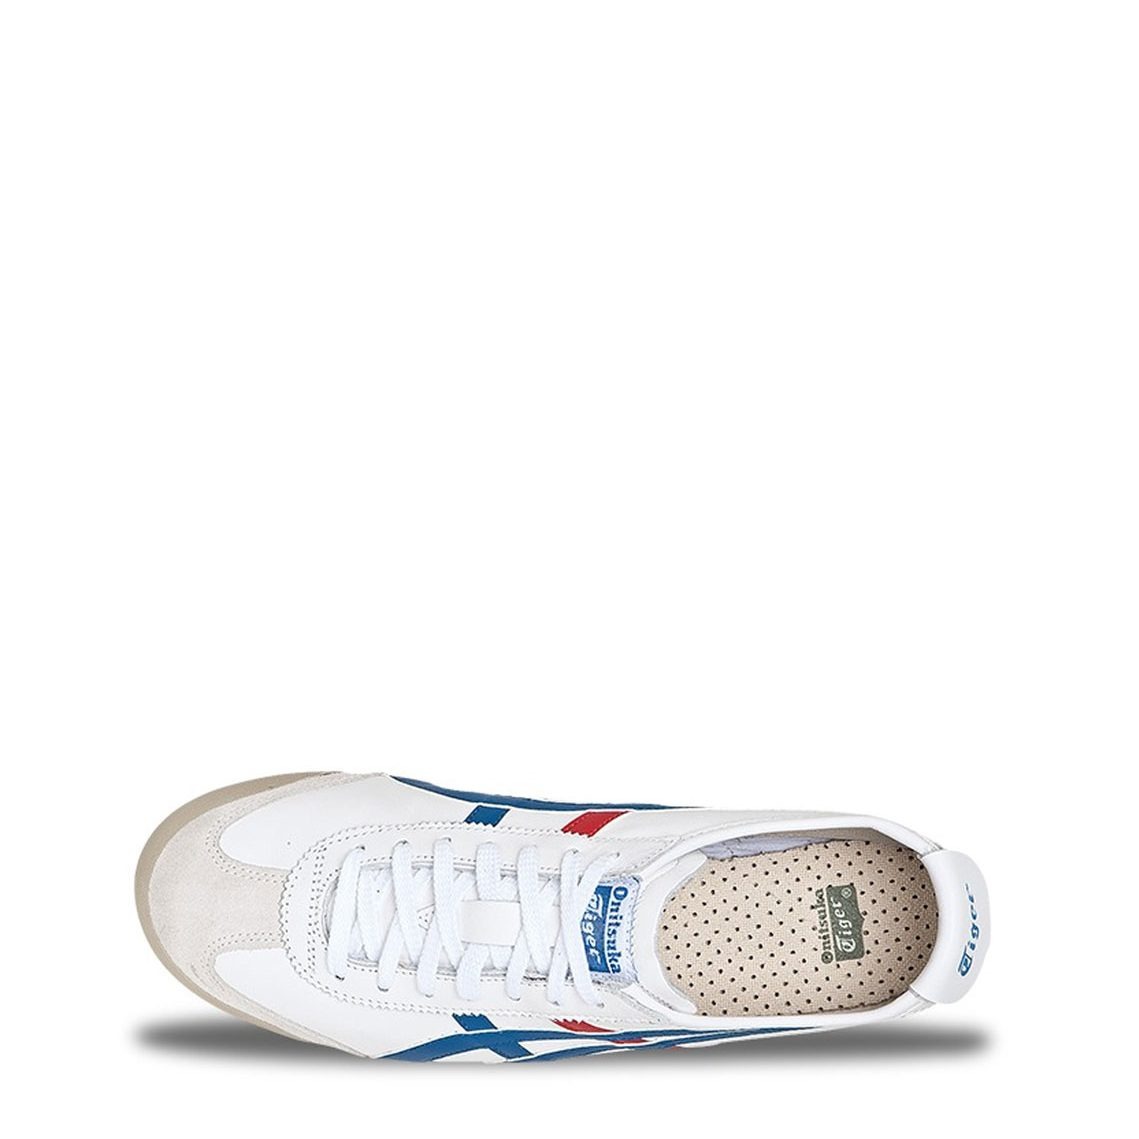 huge discount 9b77f 348dd Onitsuka Tiger Mexico 66 White/Blue Women's